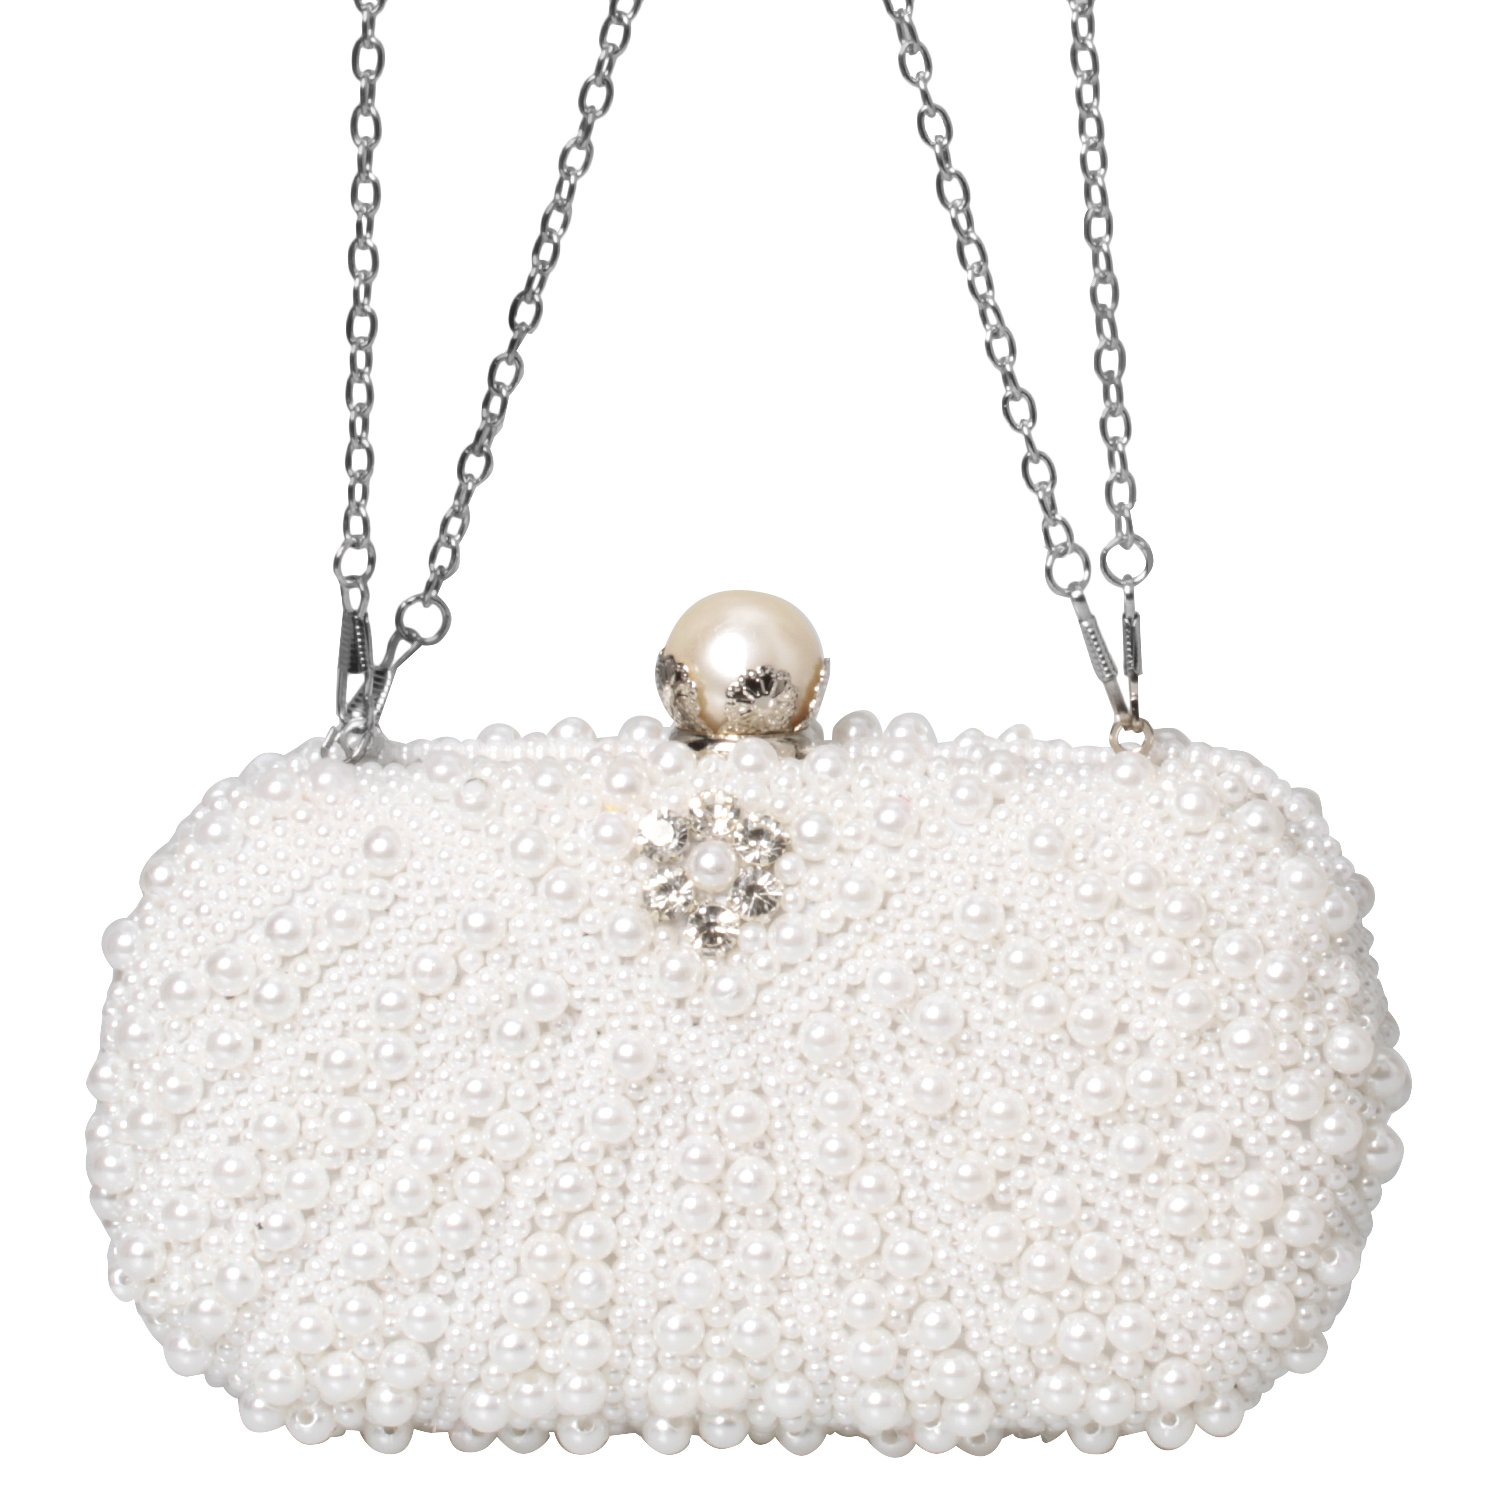 Beads Crystal Rhinestone Evening Clutch Bag Envelope Fashion Purse Women Handbags (Ivory)